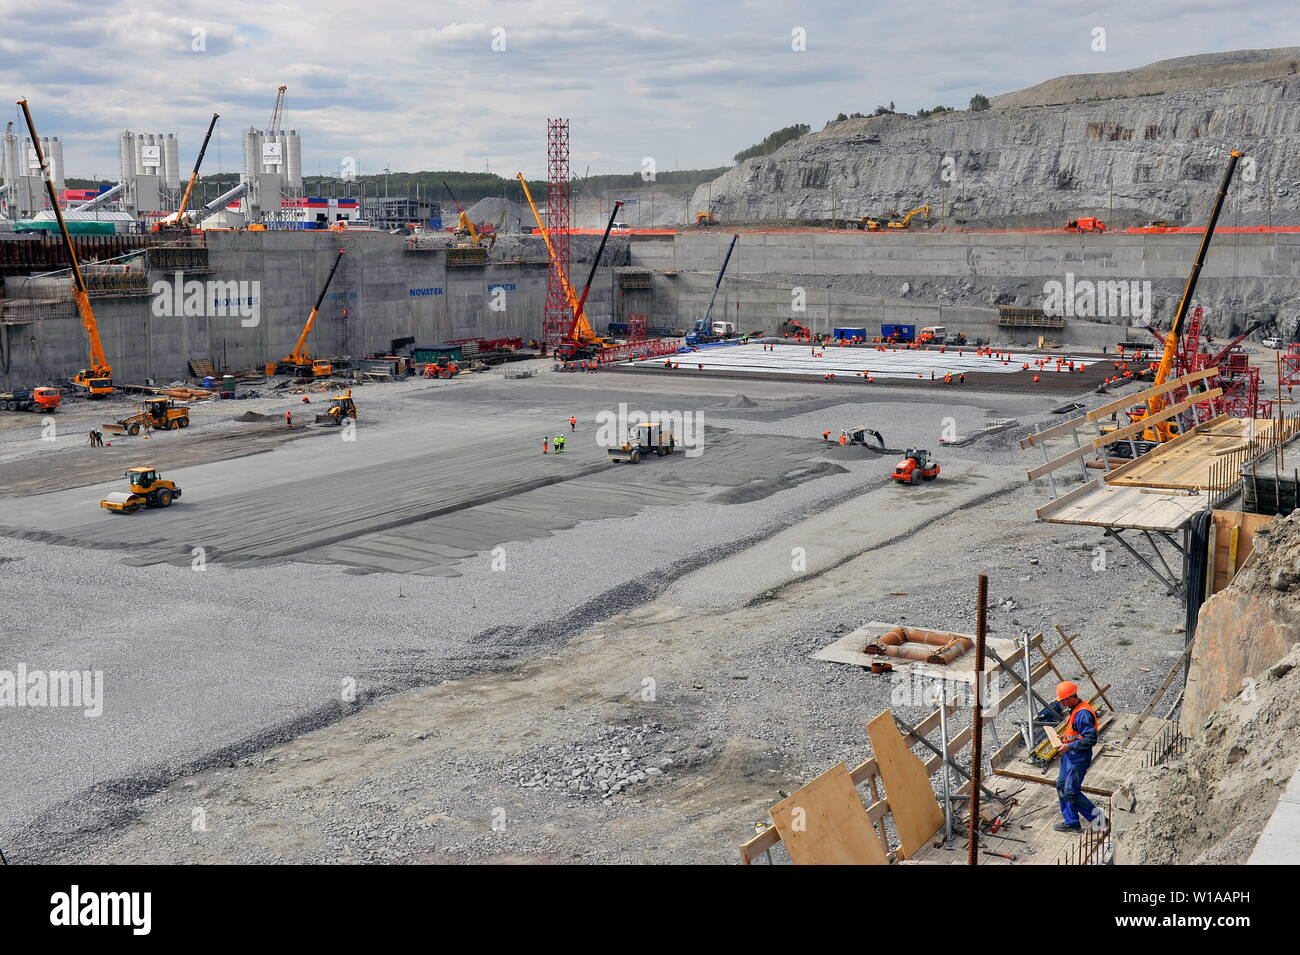 Murmansk, Russia. 01st July, 2019. The constuction site of a dry dock, in the village of Belokamenka, Murmansk Region; the construction site is part of Novatek's Kola Shipyard (also known as the Construction Yard for Large-Scale Offshore Structures), which is currently under construction on the shore of Kola Bay, some 12km north of the port of Murmansk, on Russia's Arctic coast. Credit: ITAR-TASS News Agency/Alamy Live News - Stock Image